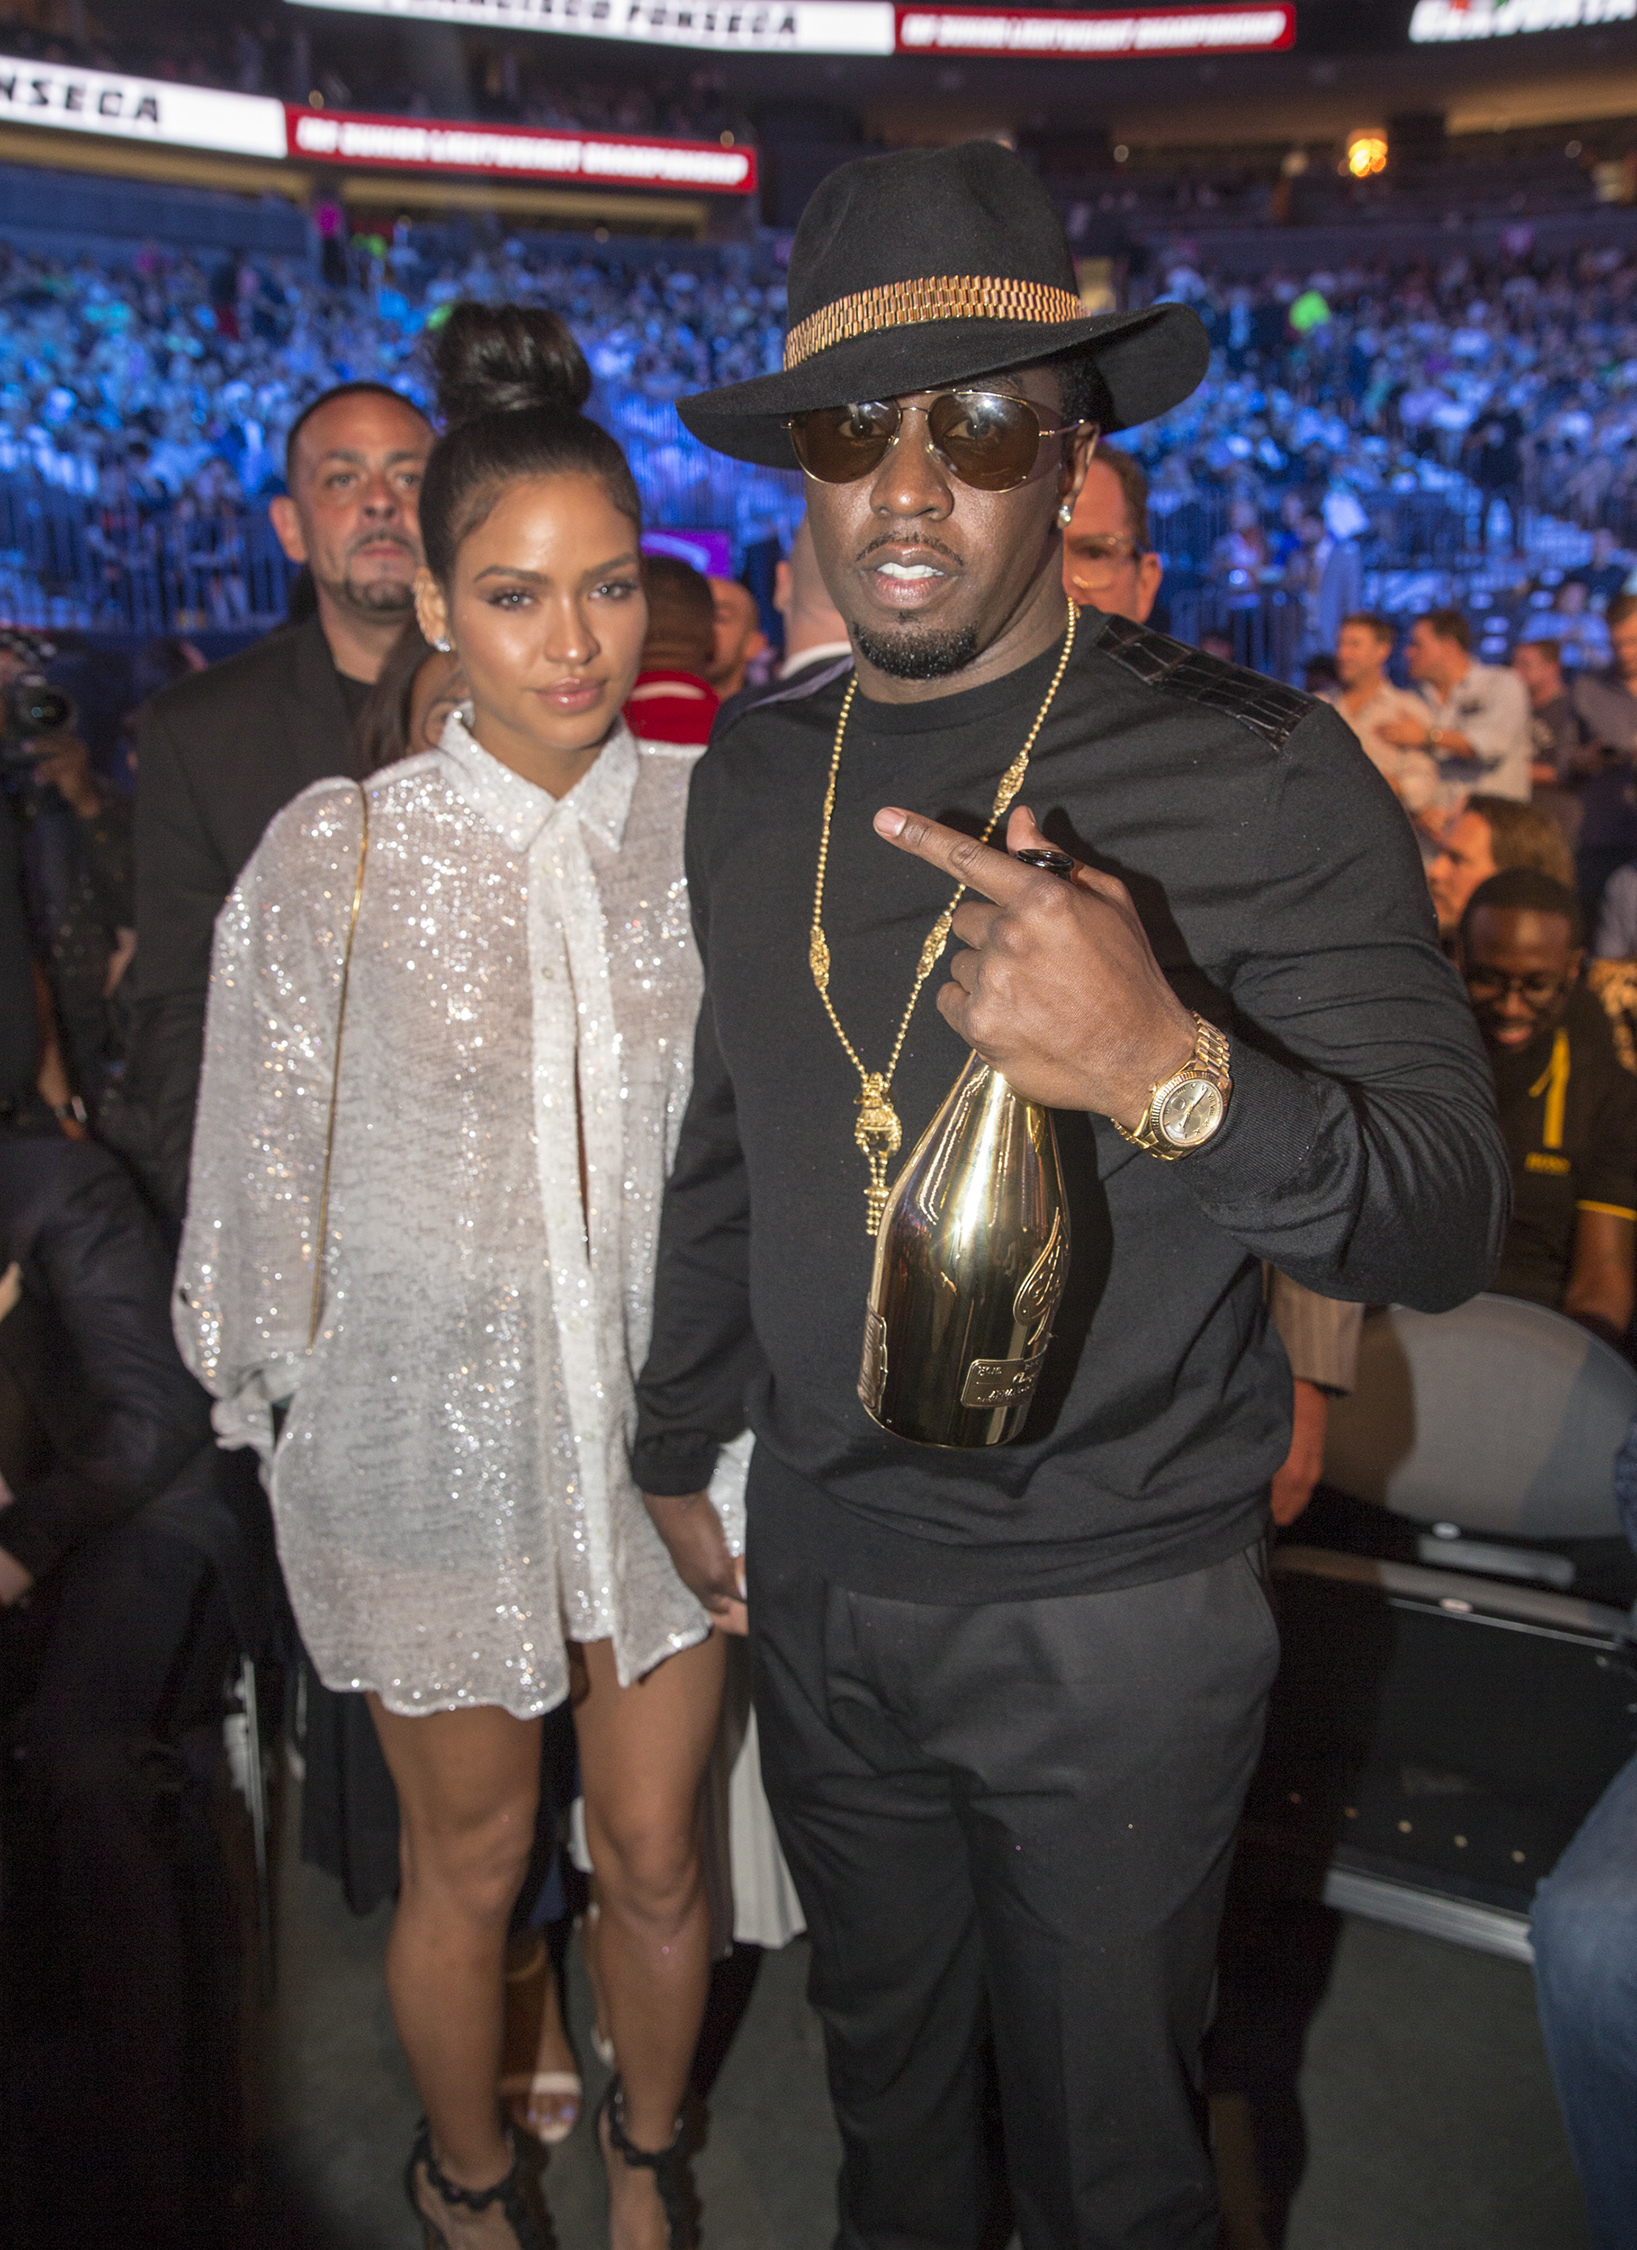 Diddy and longtime girlfriend Cassie were on hand for the Mayweather vs. McGregor fight in Las Vegas on Aug. 26, 2017.